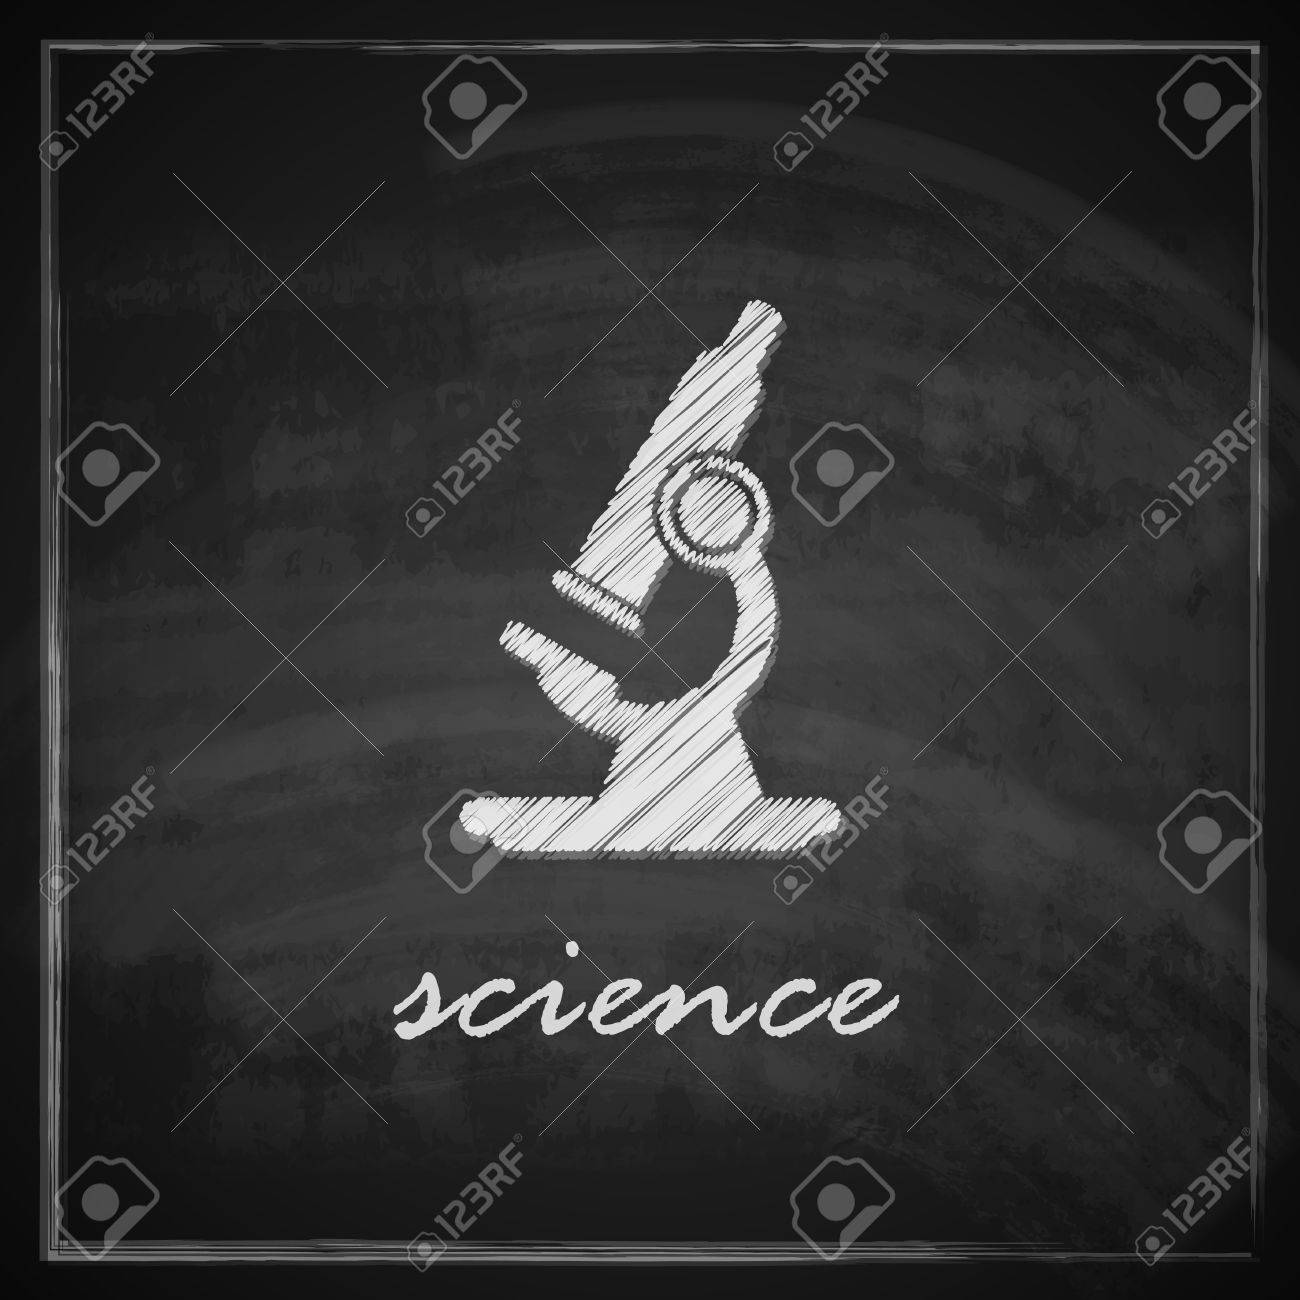 vintage illustration with microscope on blackboard background  science concept Stock Vector - 26195900